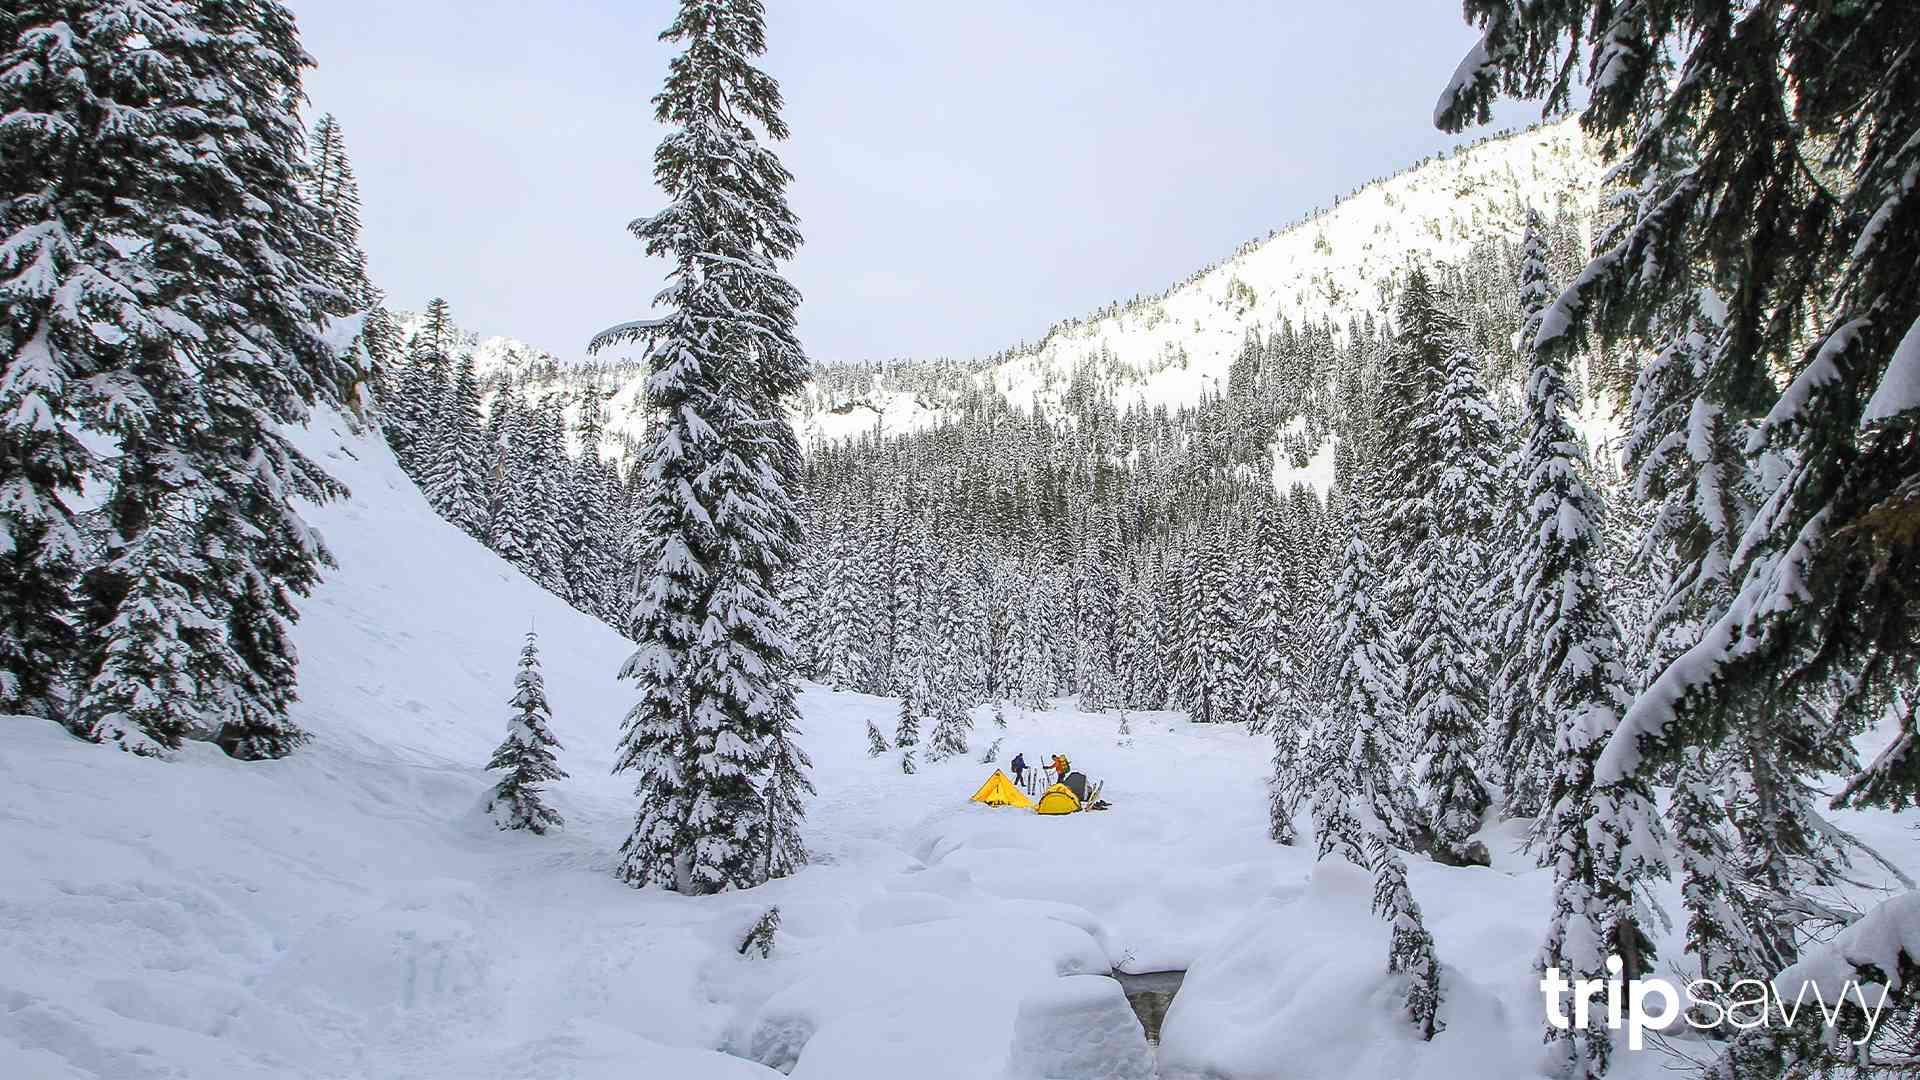 Two hikers setting up camp in the snowy Cascade Mountains